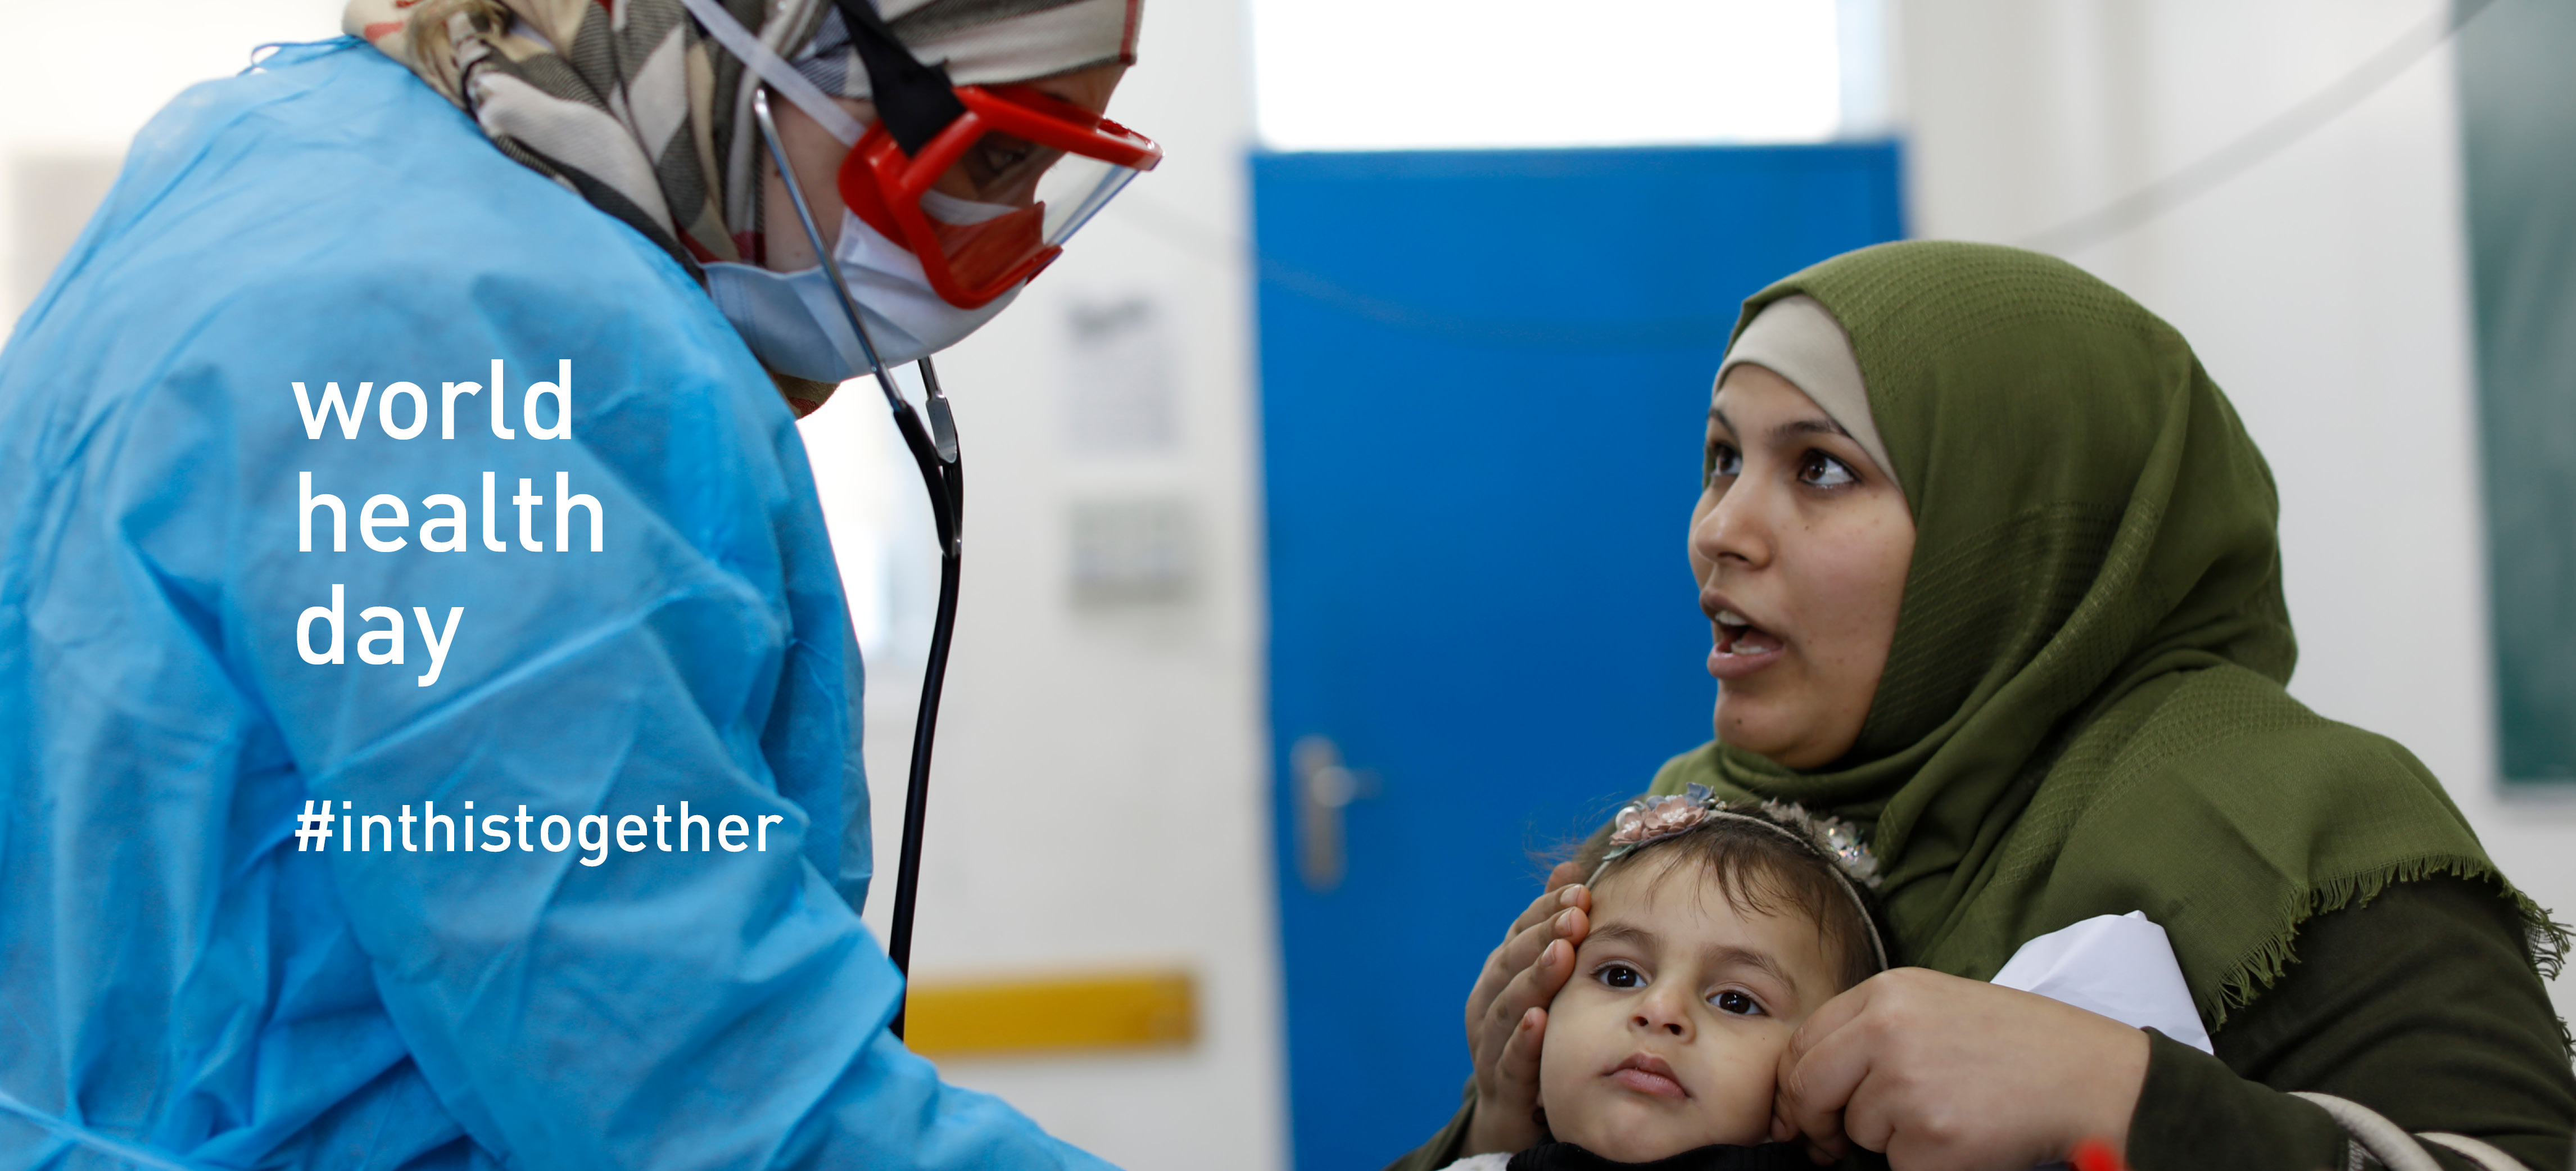 In the fight against the Coronavirus (COVID-19) UNRWA staff are on the frontlines